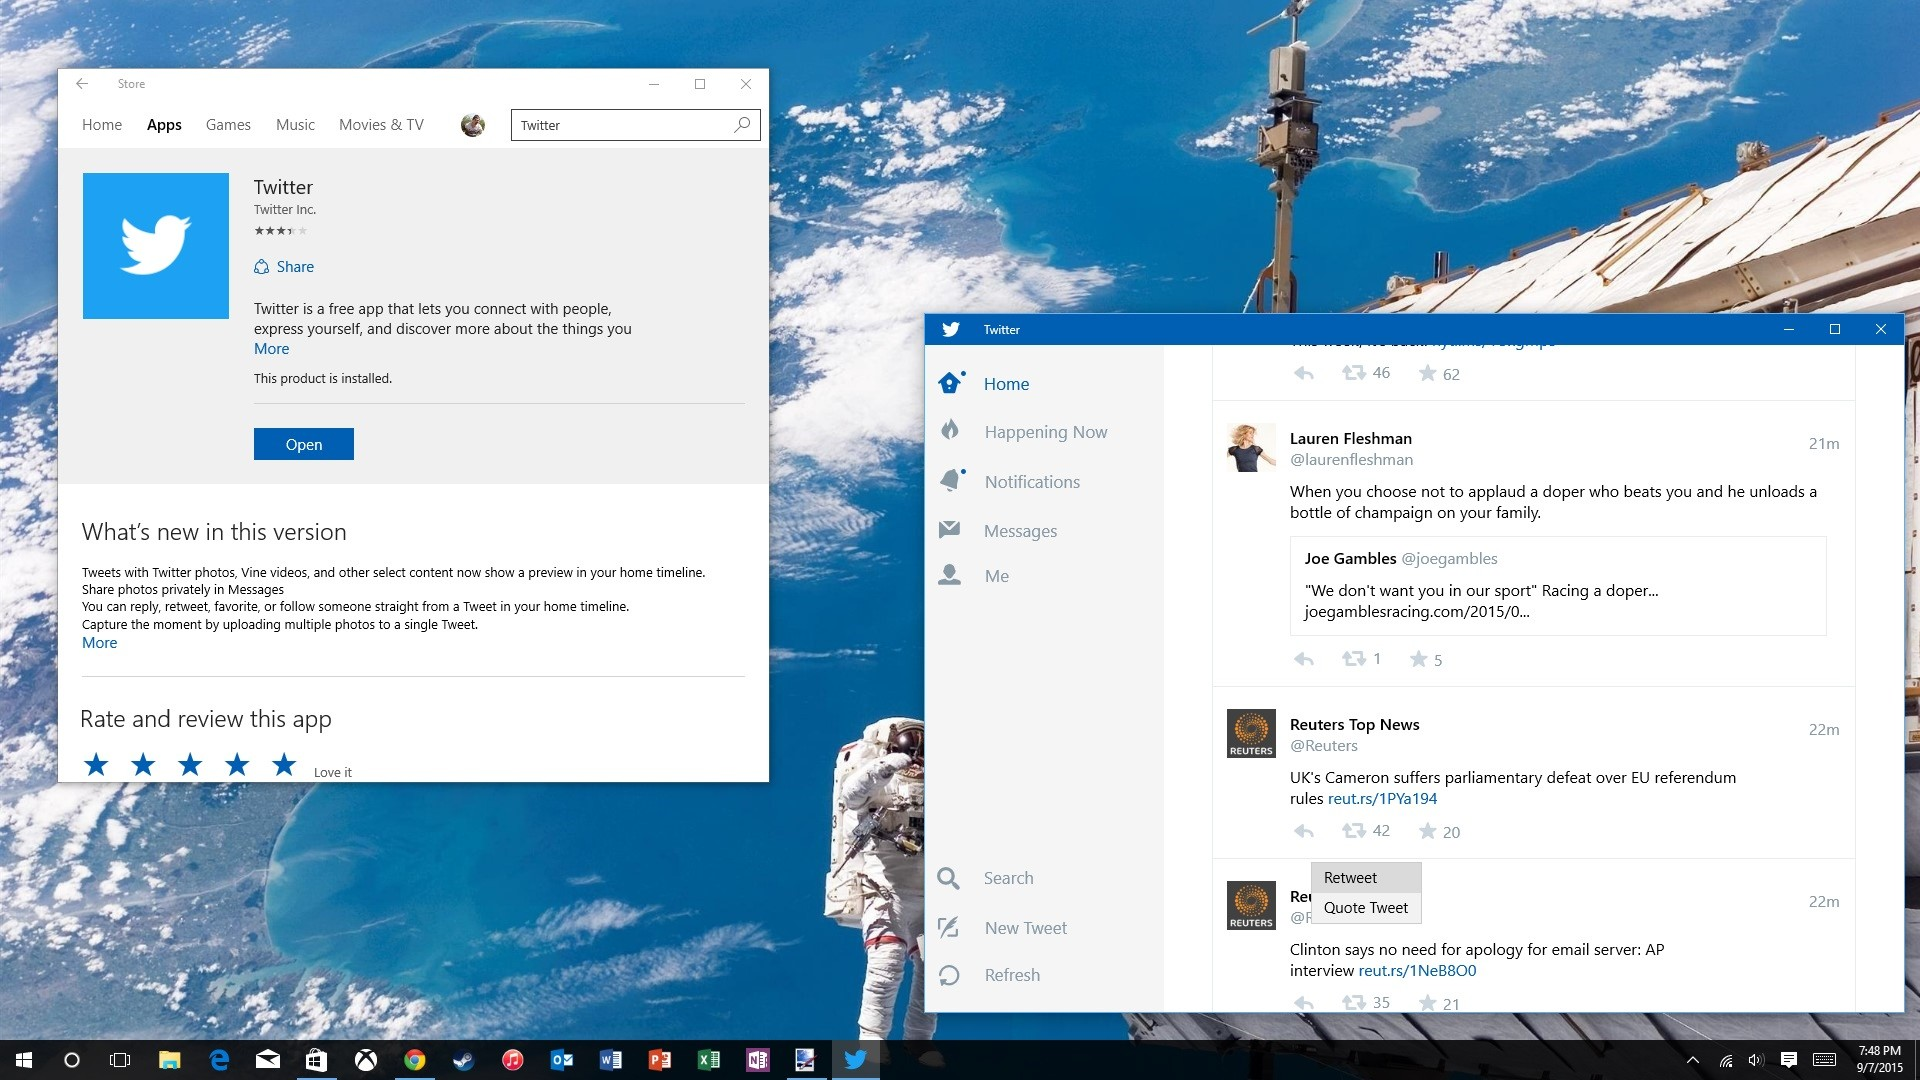 Twitter for Windows 10 updated with quote tweet, multiple